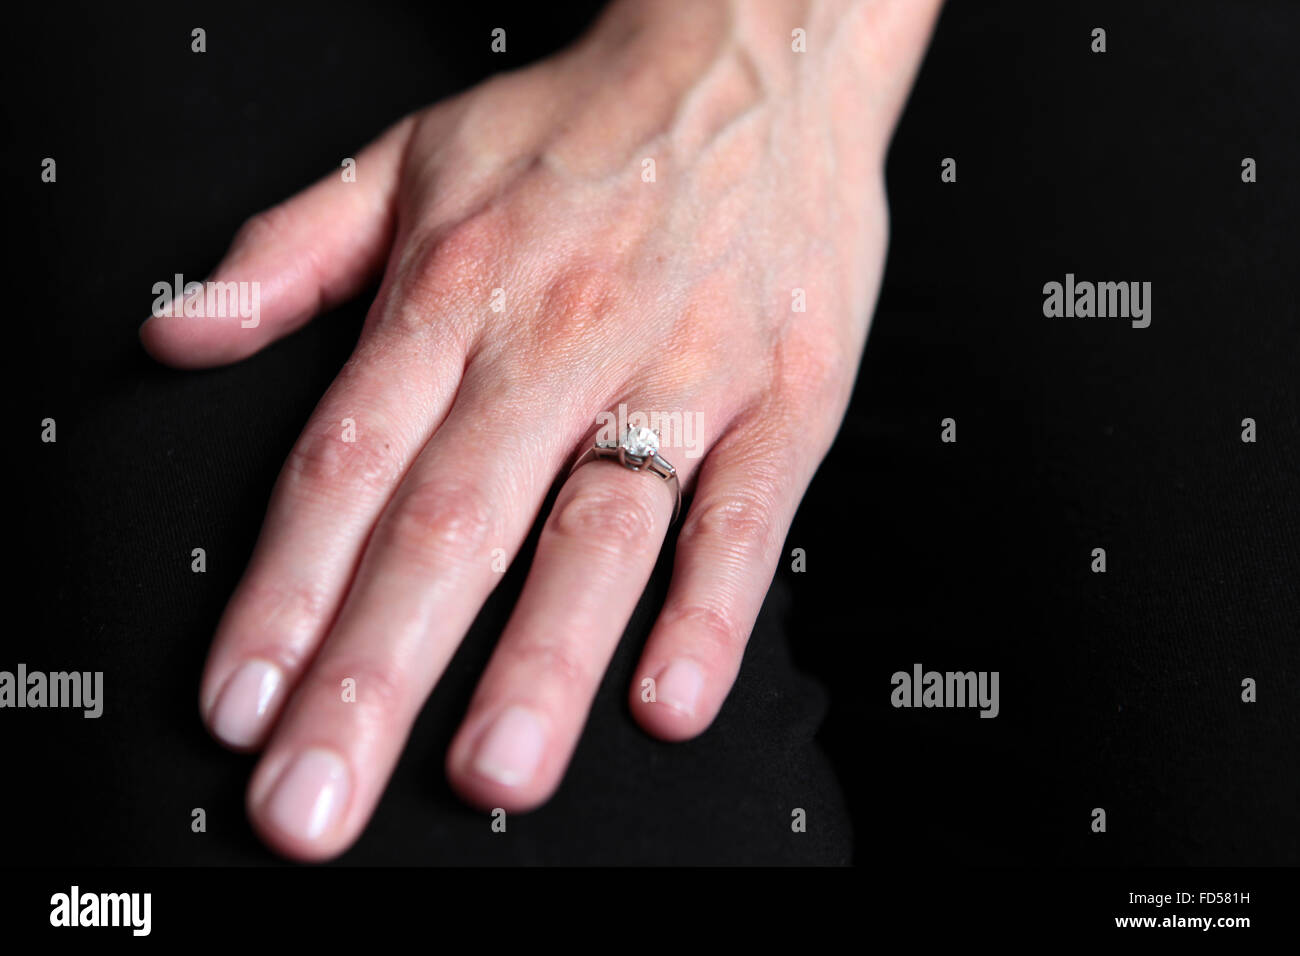 Diamond Ring Cut Out Stock Photos & Diamond Ring Cut Out Stock ...